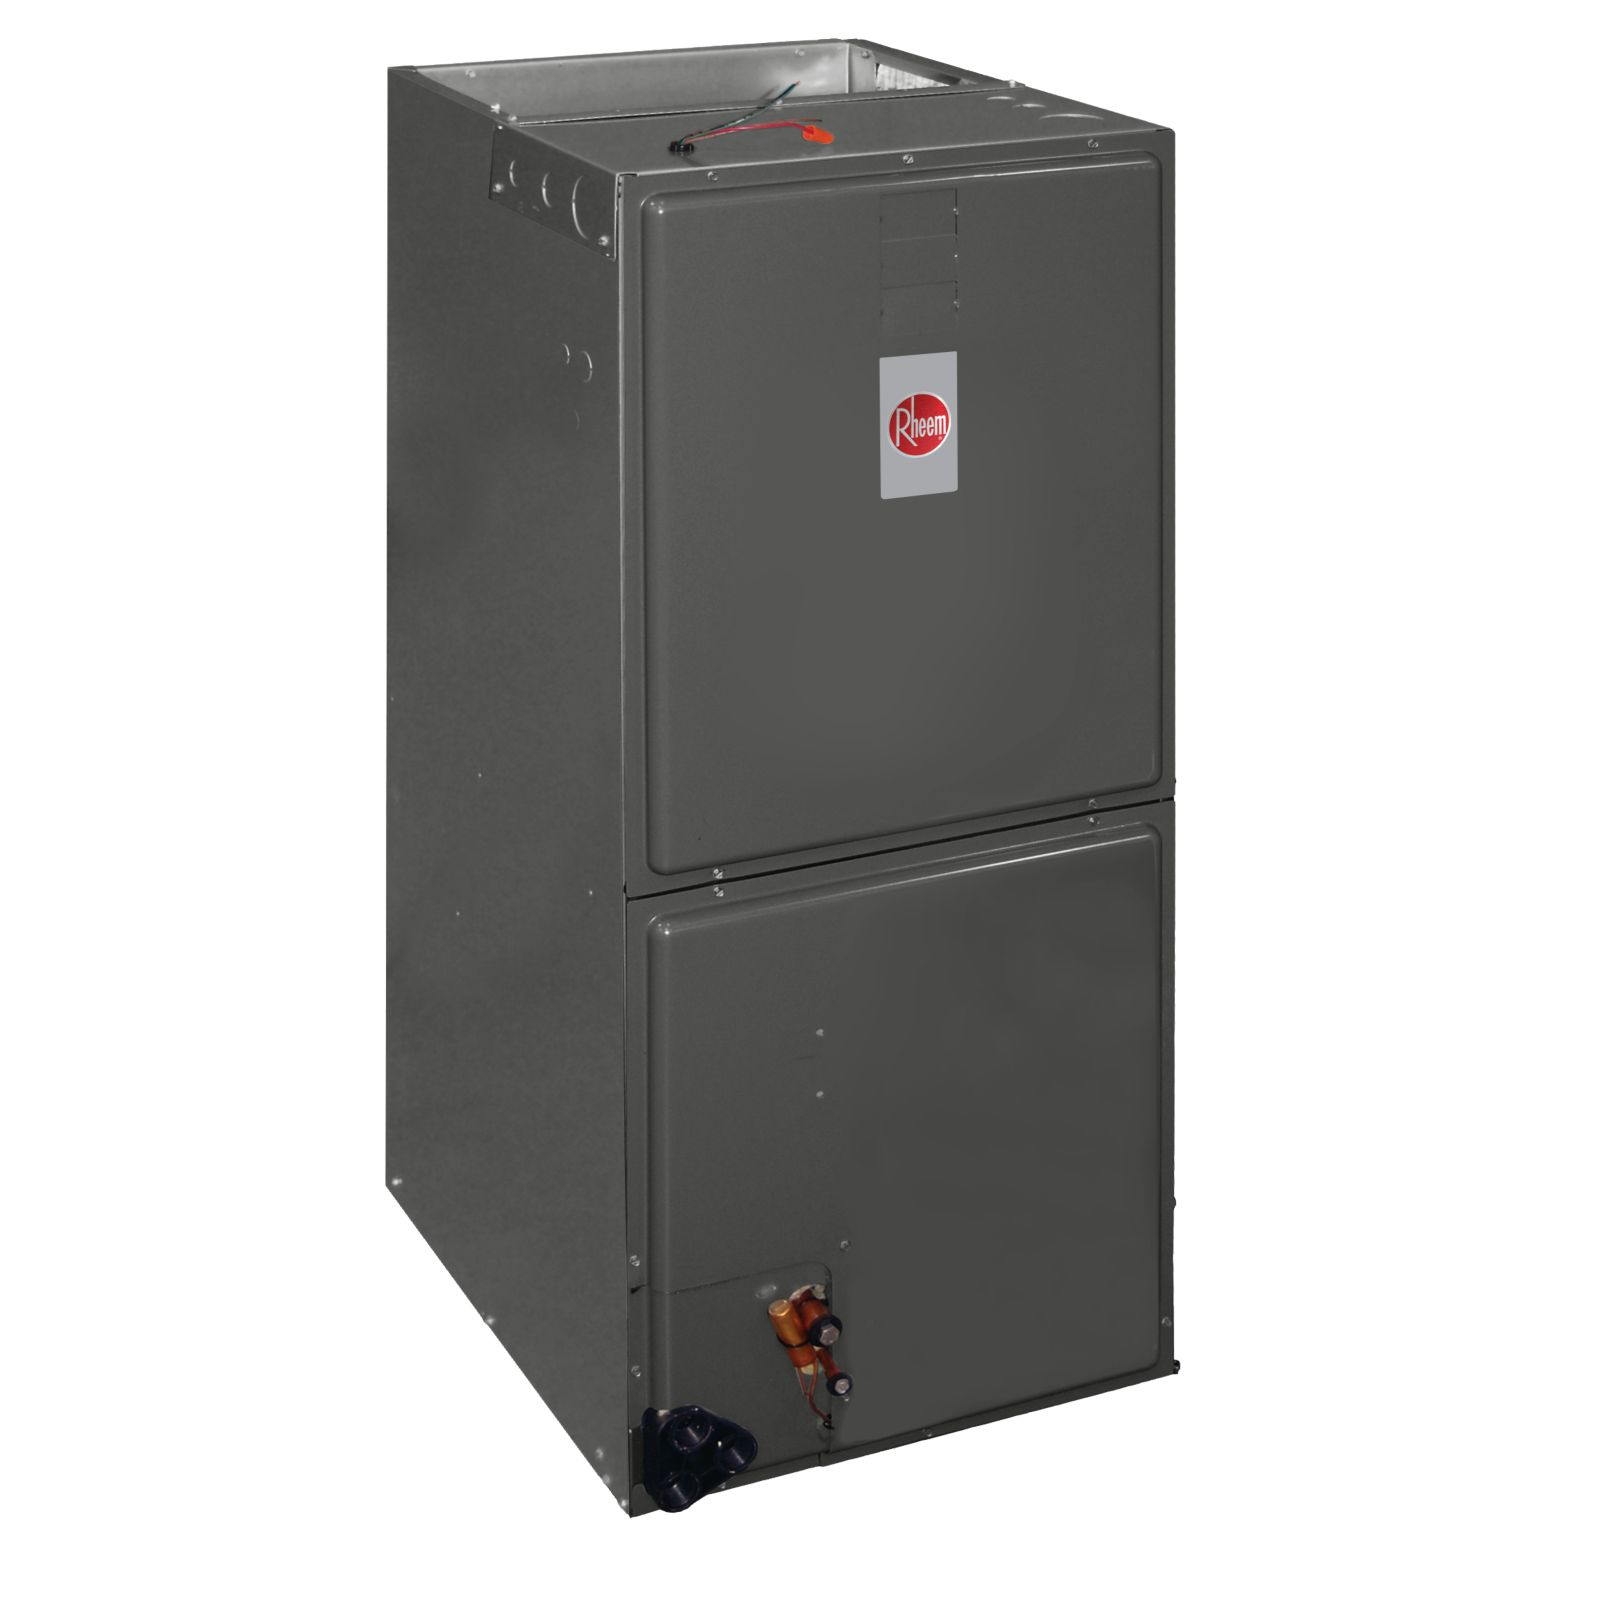 Rheem RHKL-HM3617JA - Premium Series 3 Ton Multiposition Air Handler - Up to 16 SEER - R410A - Quiet ECM Motor